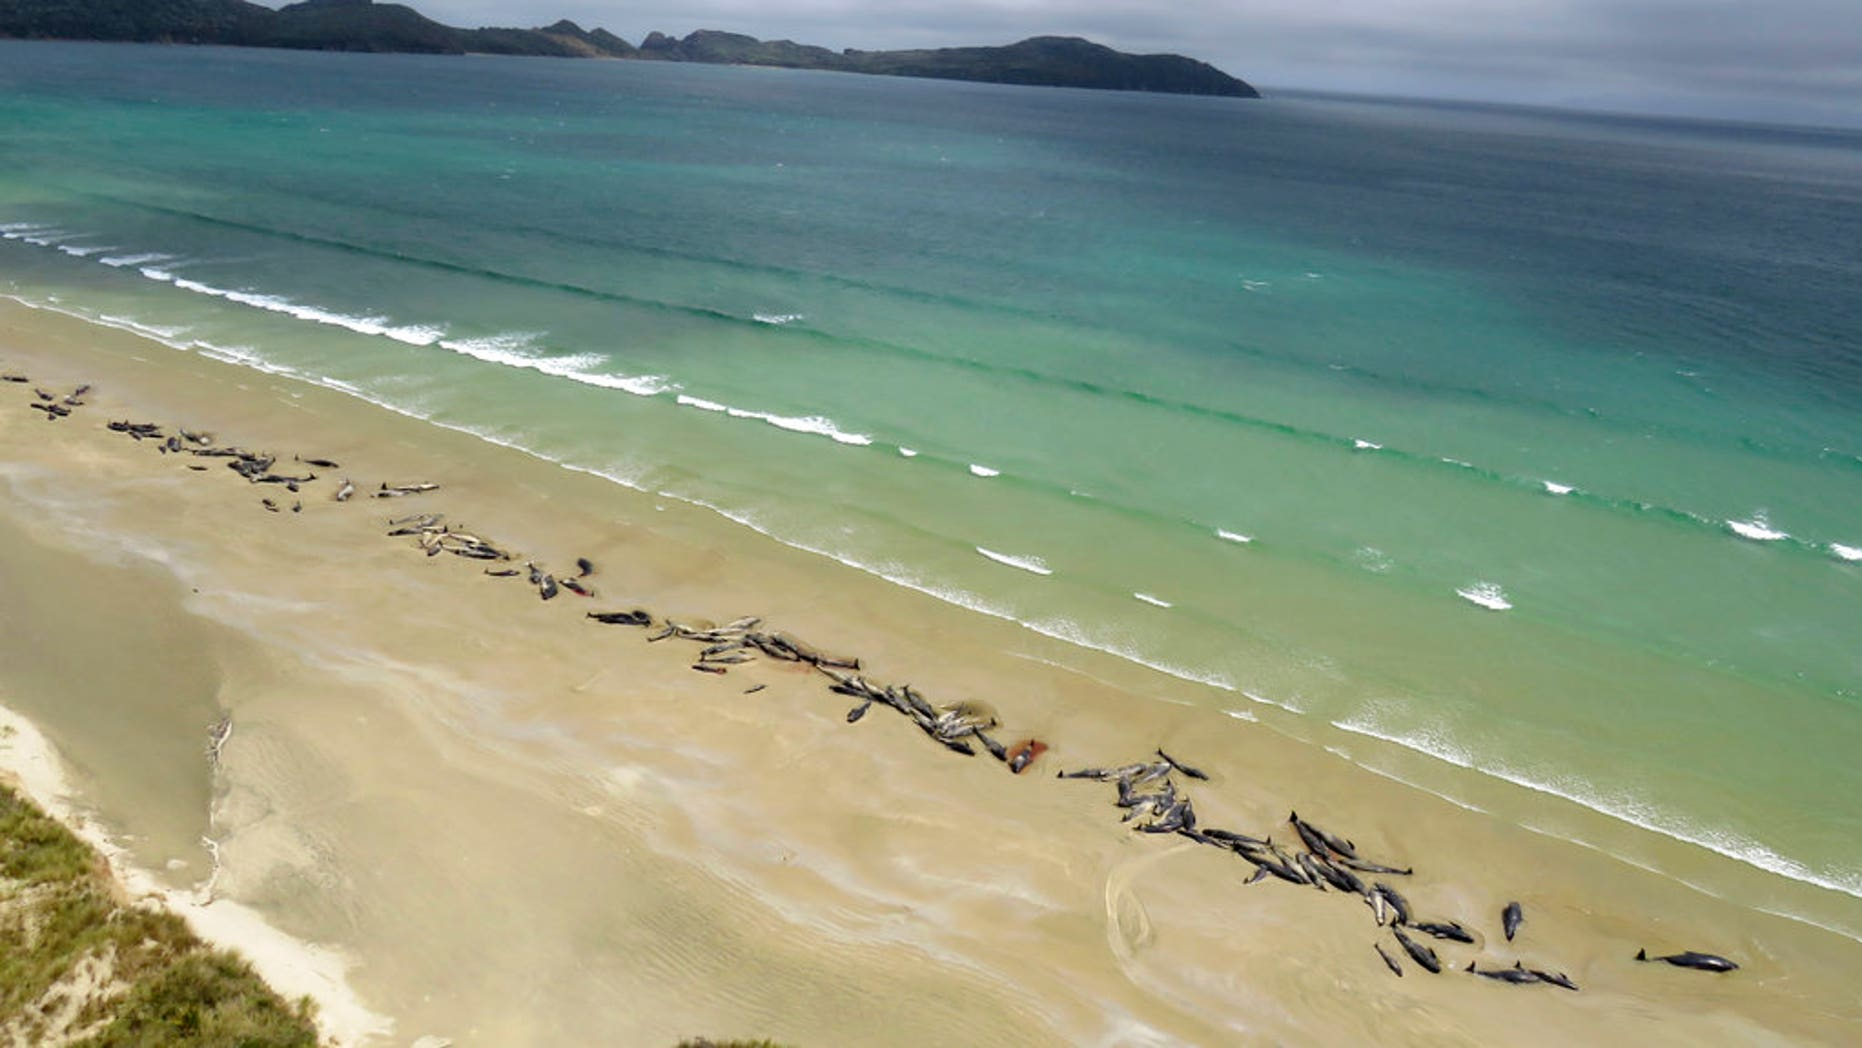 More than 140 whales die after becoming stranded on New Zealand beach